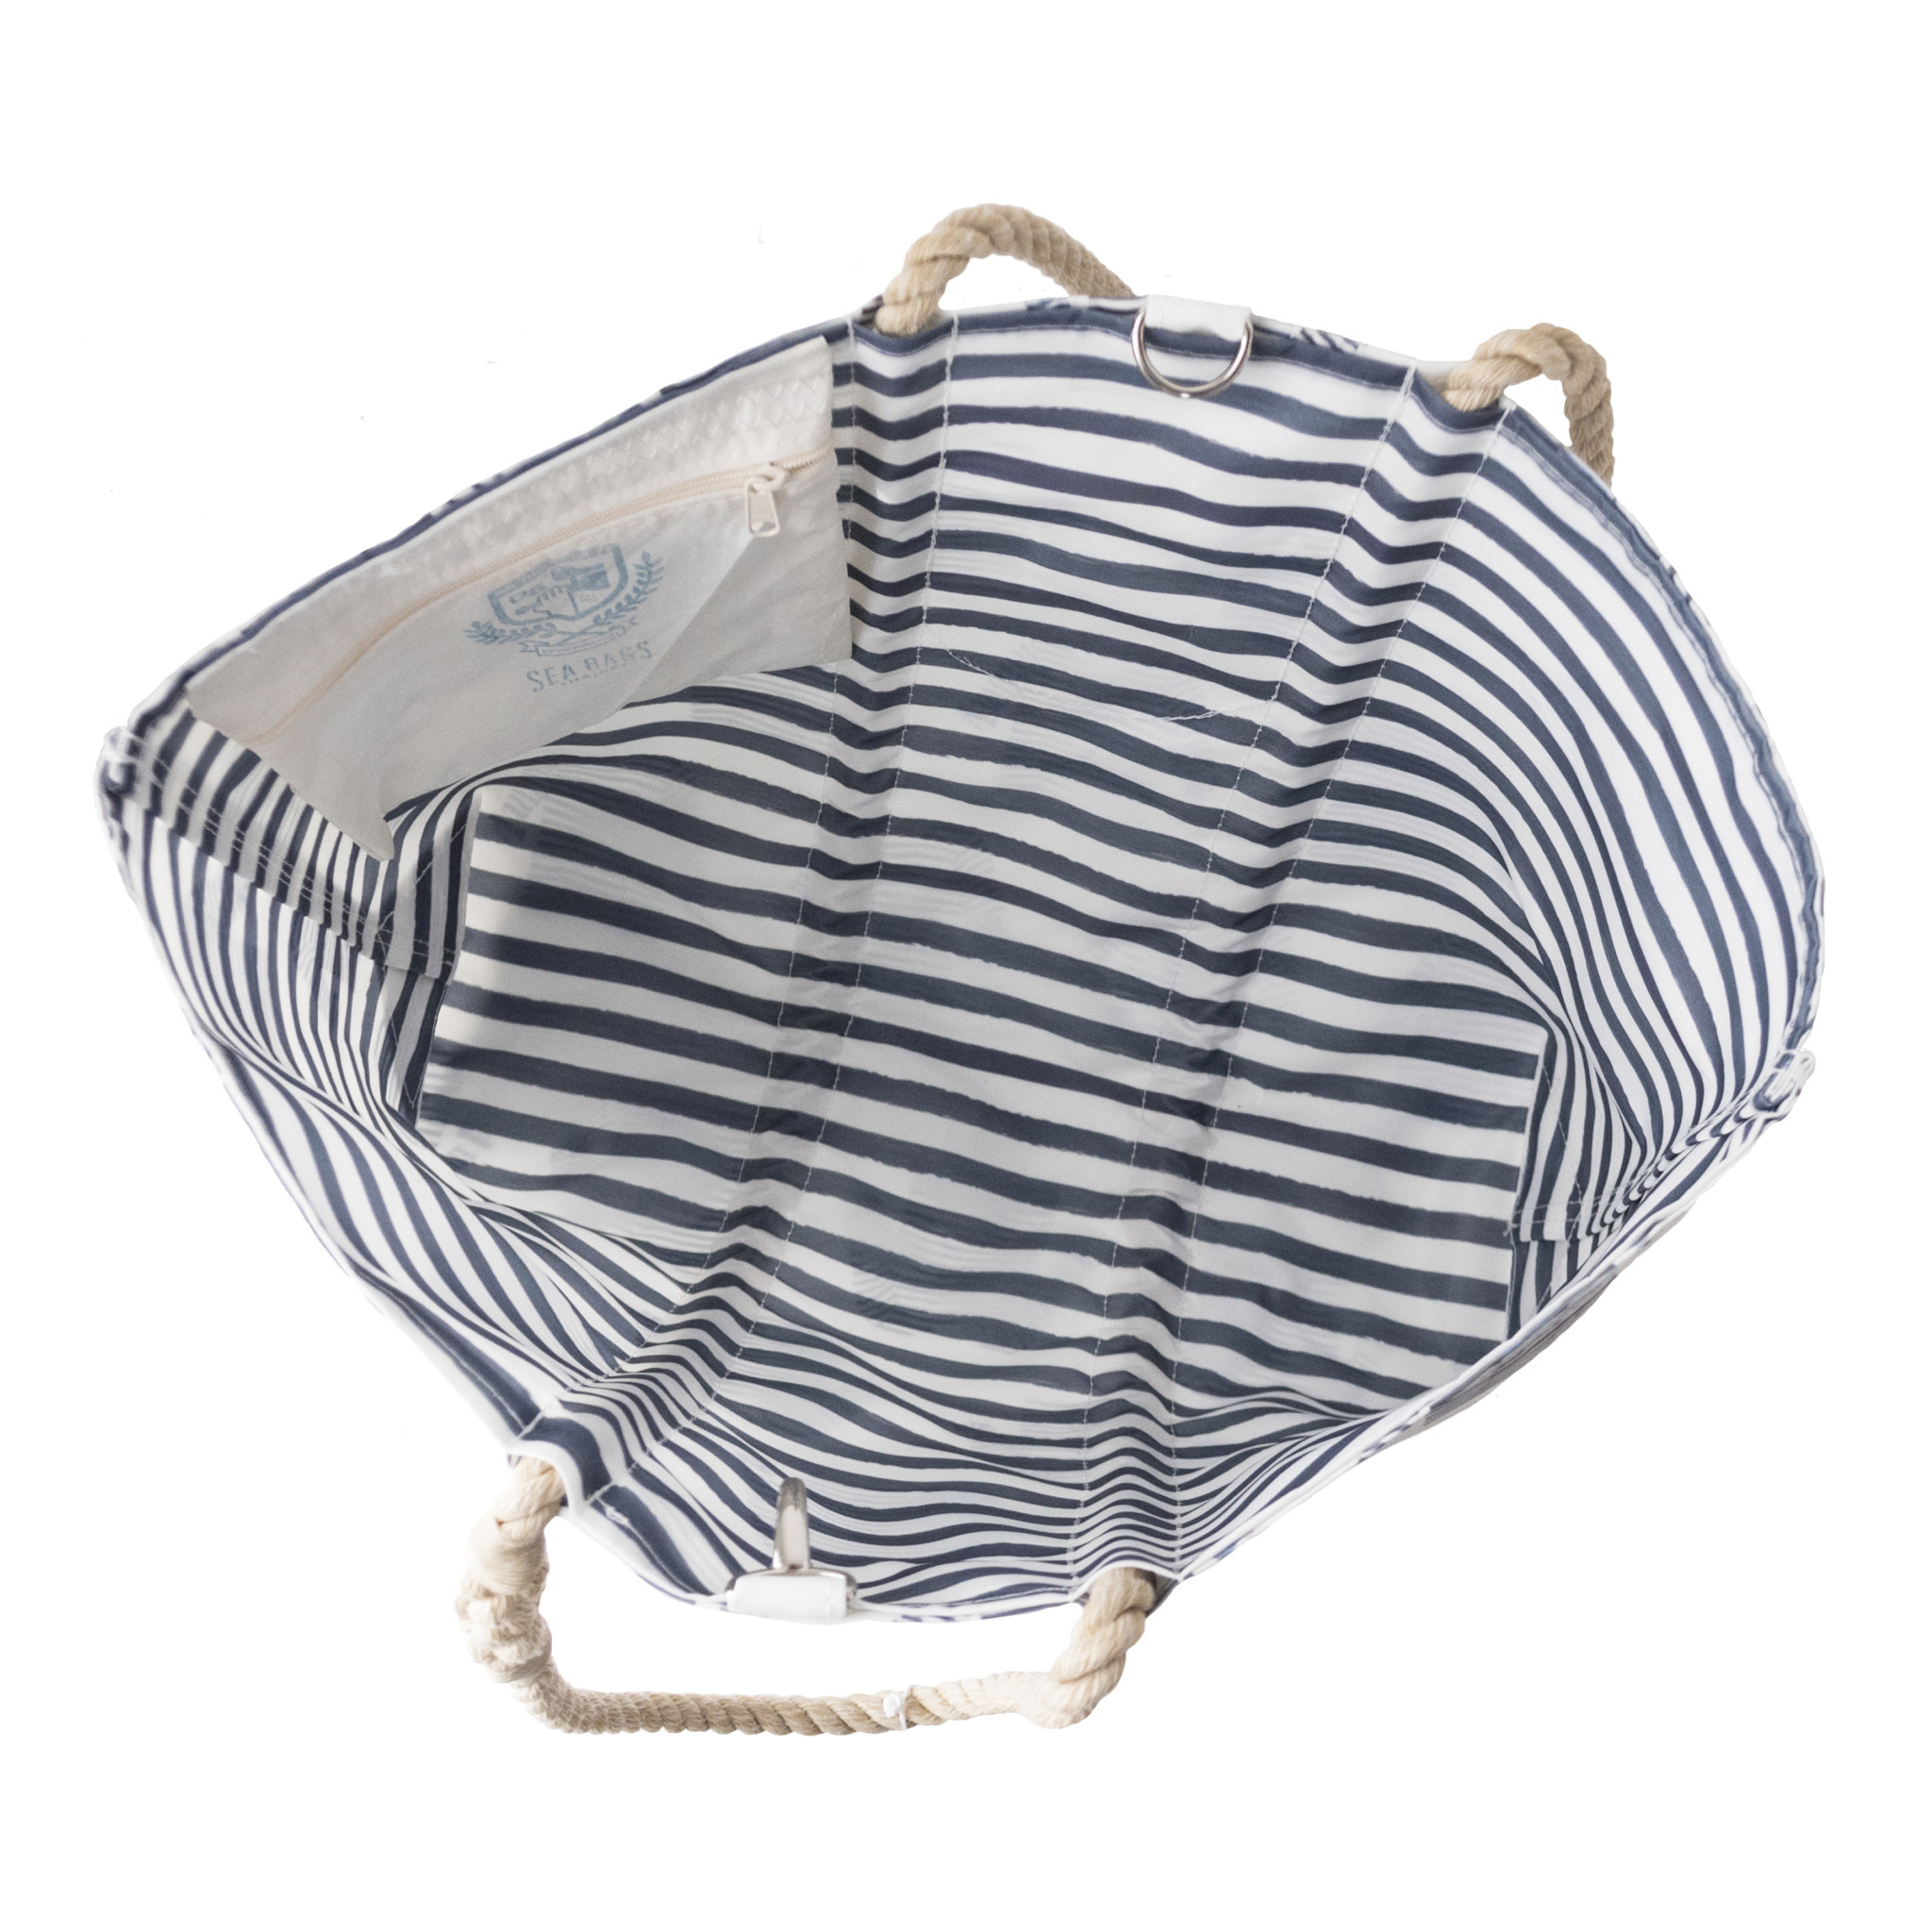 Sea Bags Sara Fitz - Striped Shirt - Large Tote - Hemp Handle with Clasp